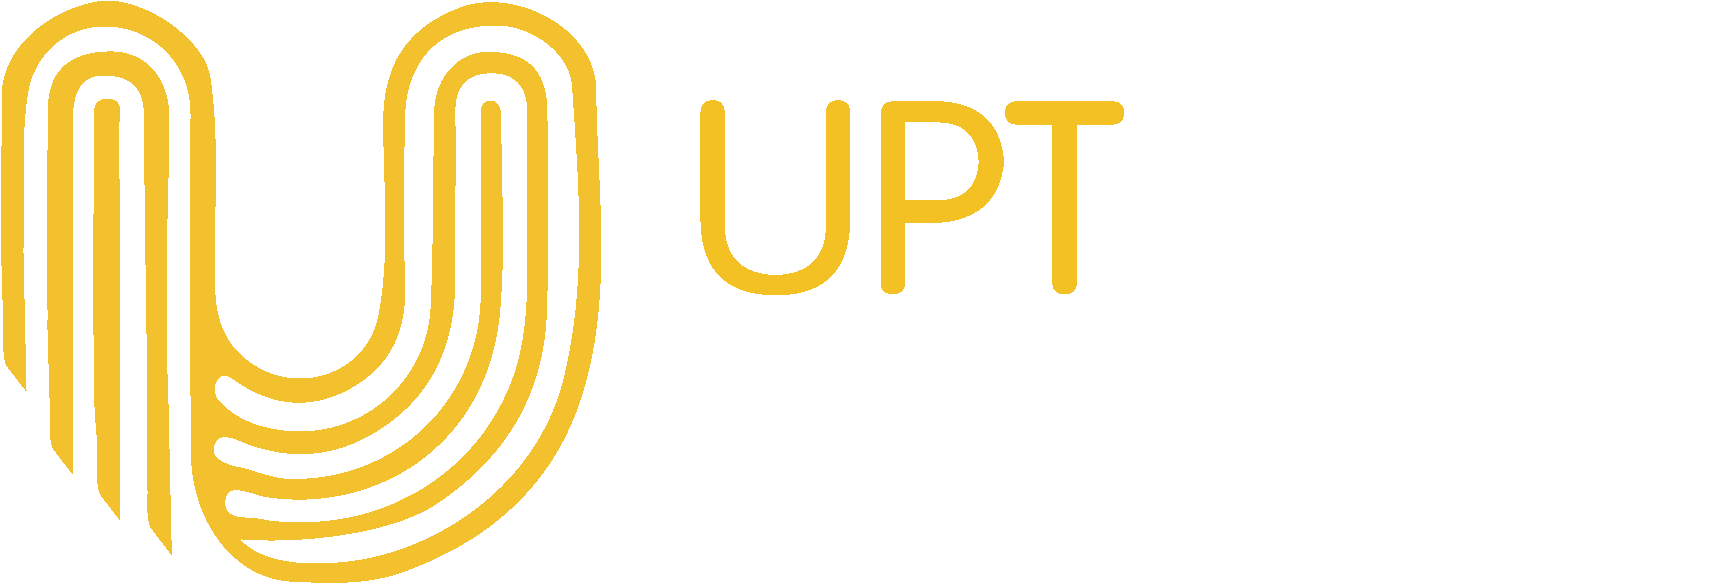 Up Tree Marketing Sdn Bhd logo transparent png.